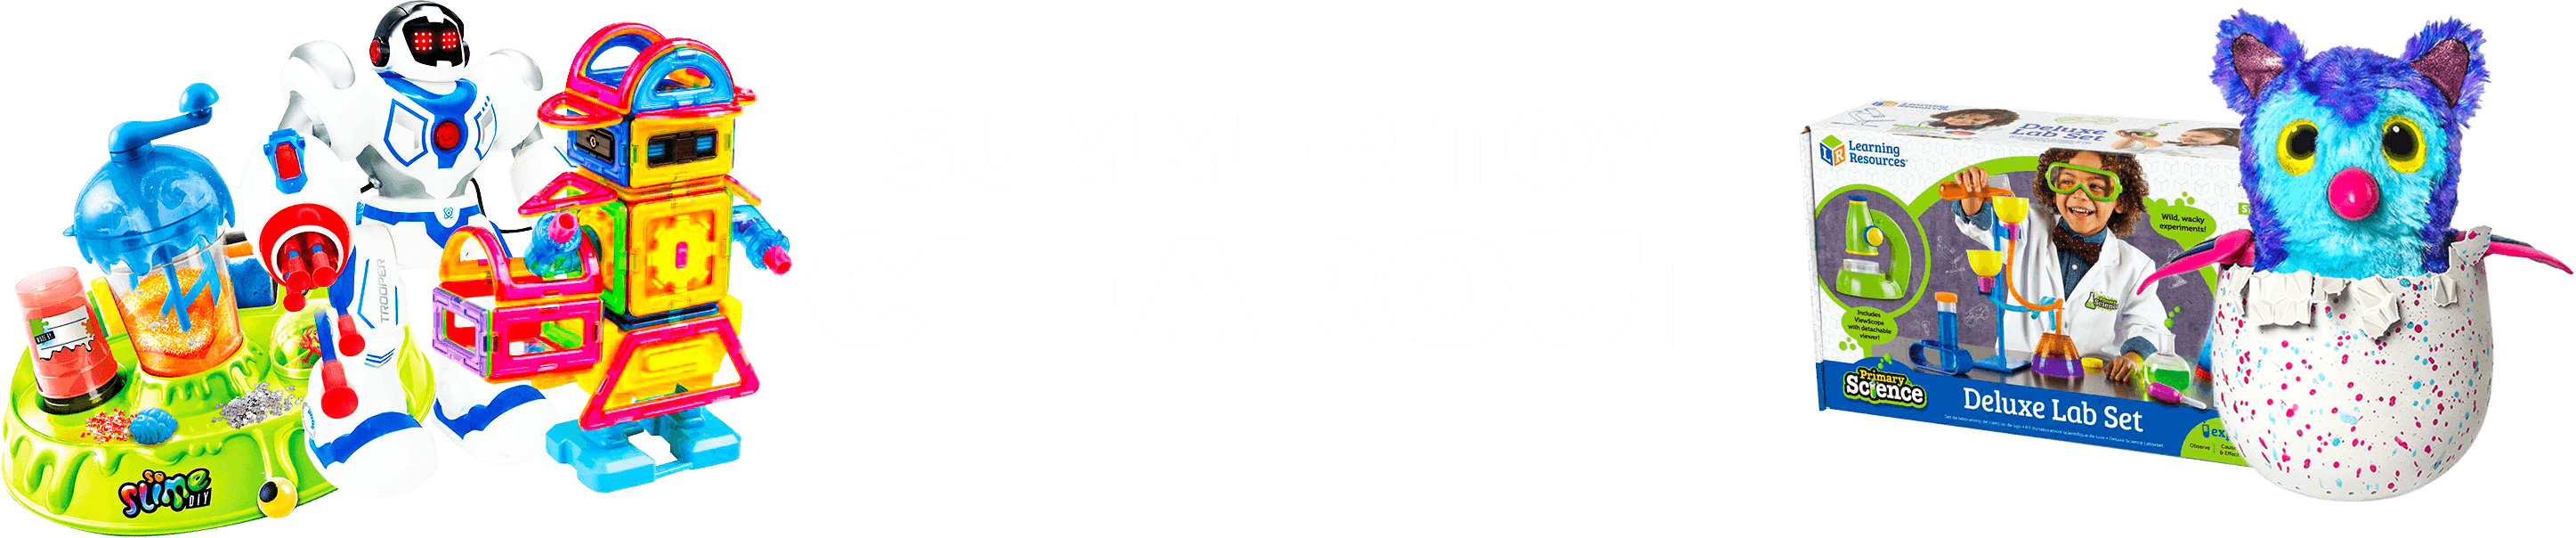 Shop Our Summer Clearout Sale Now